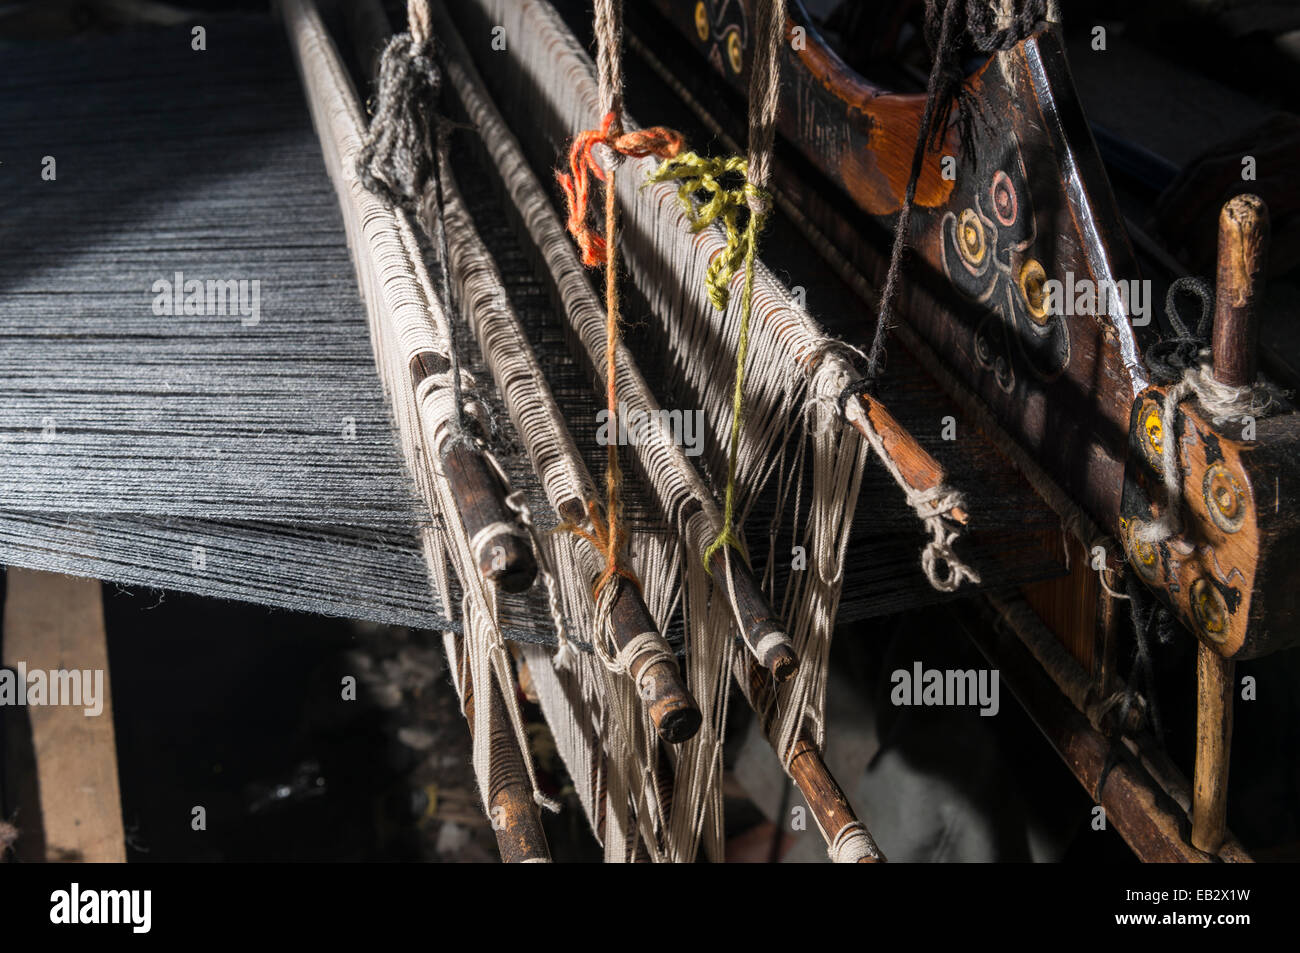 Detailed view of a handloom, Chitkul, Himachal Pradesh, India - Stock Image